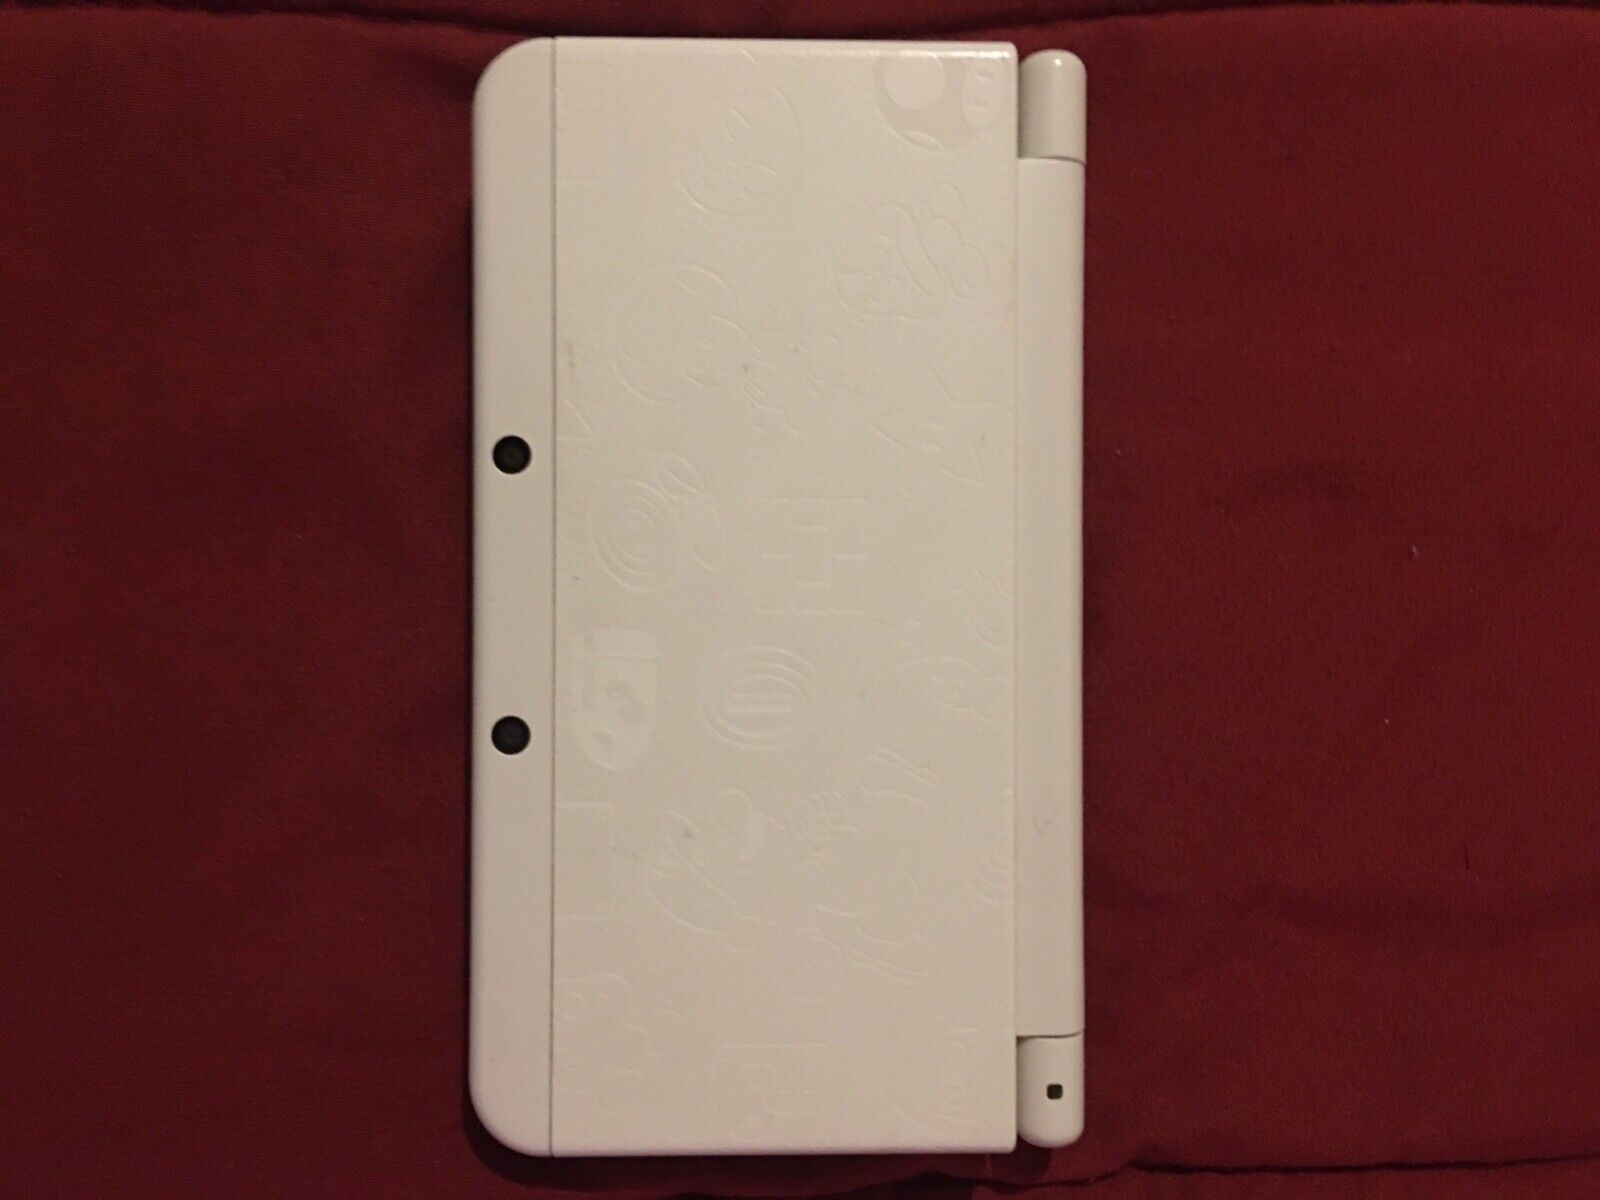 Nintendo New 3DS Super Mario White Edition Gaming System - $235.00